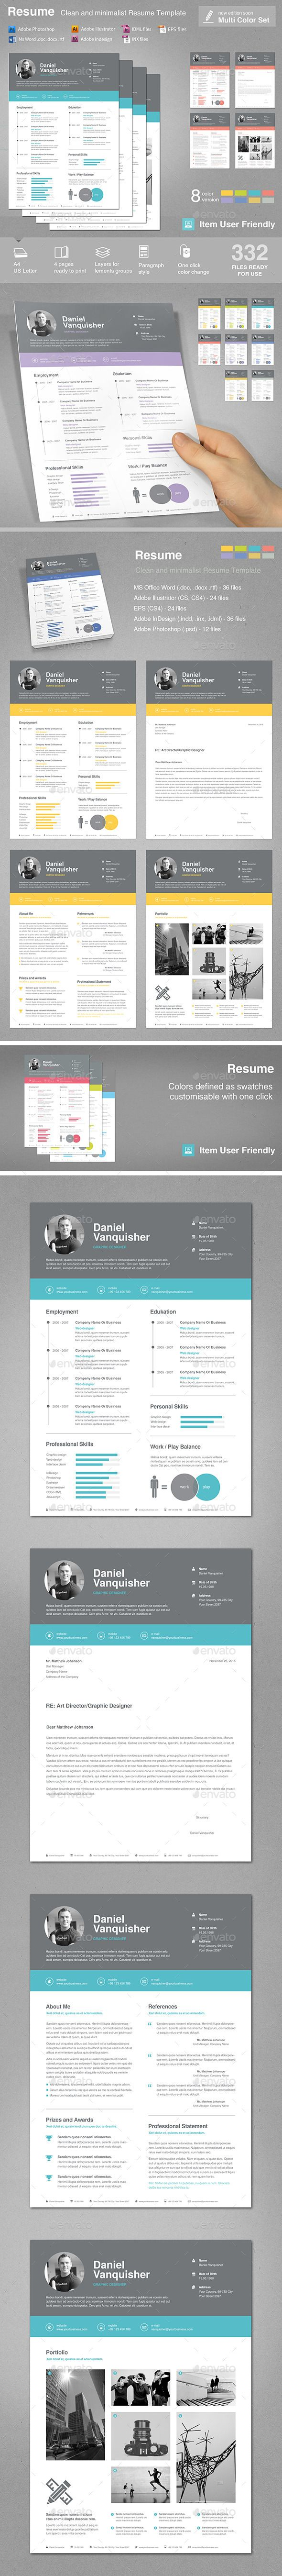 Resume  #clean #curriculum vitae #cv • Available here → http://graphicriver.net/item/resume/11042365?s_rank=22&ref=pxcr